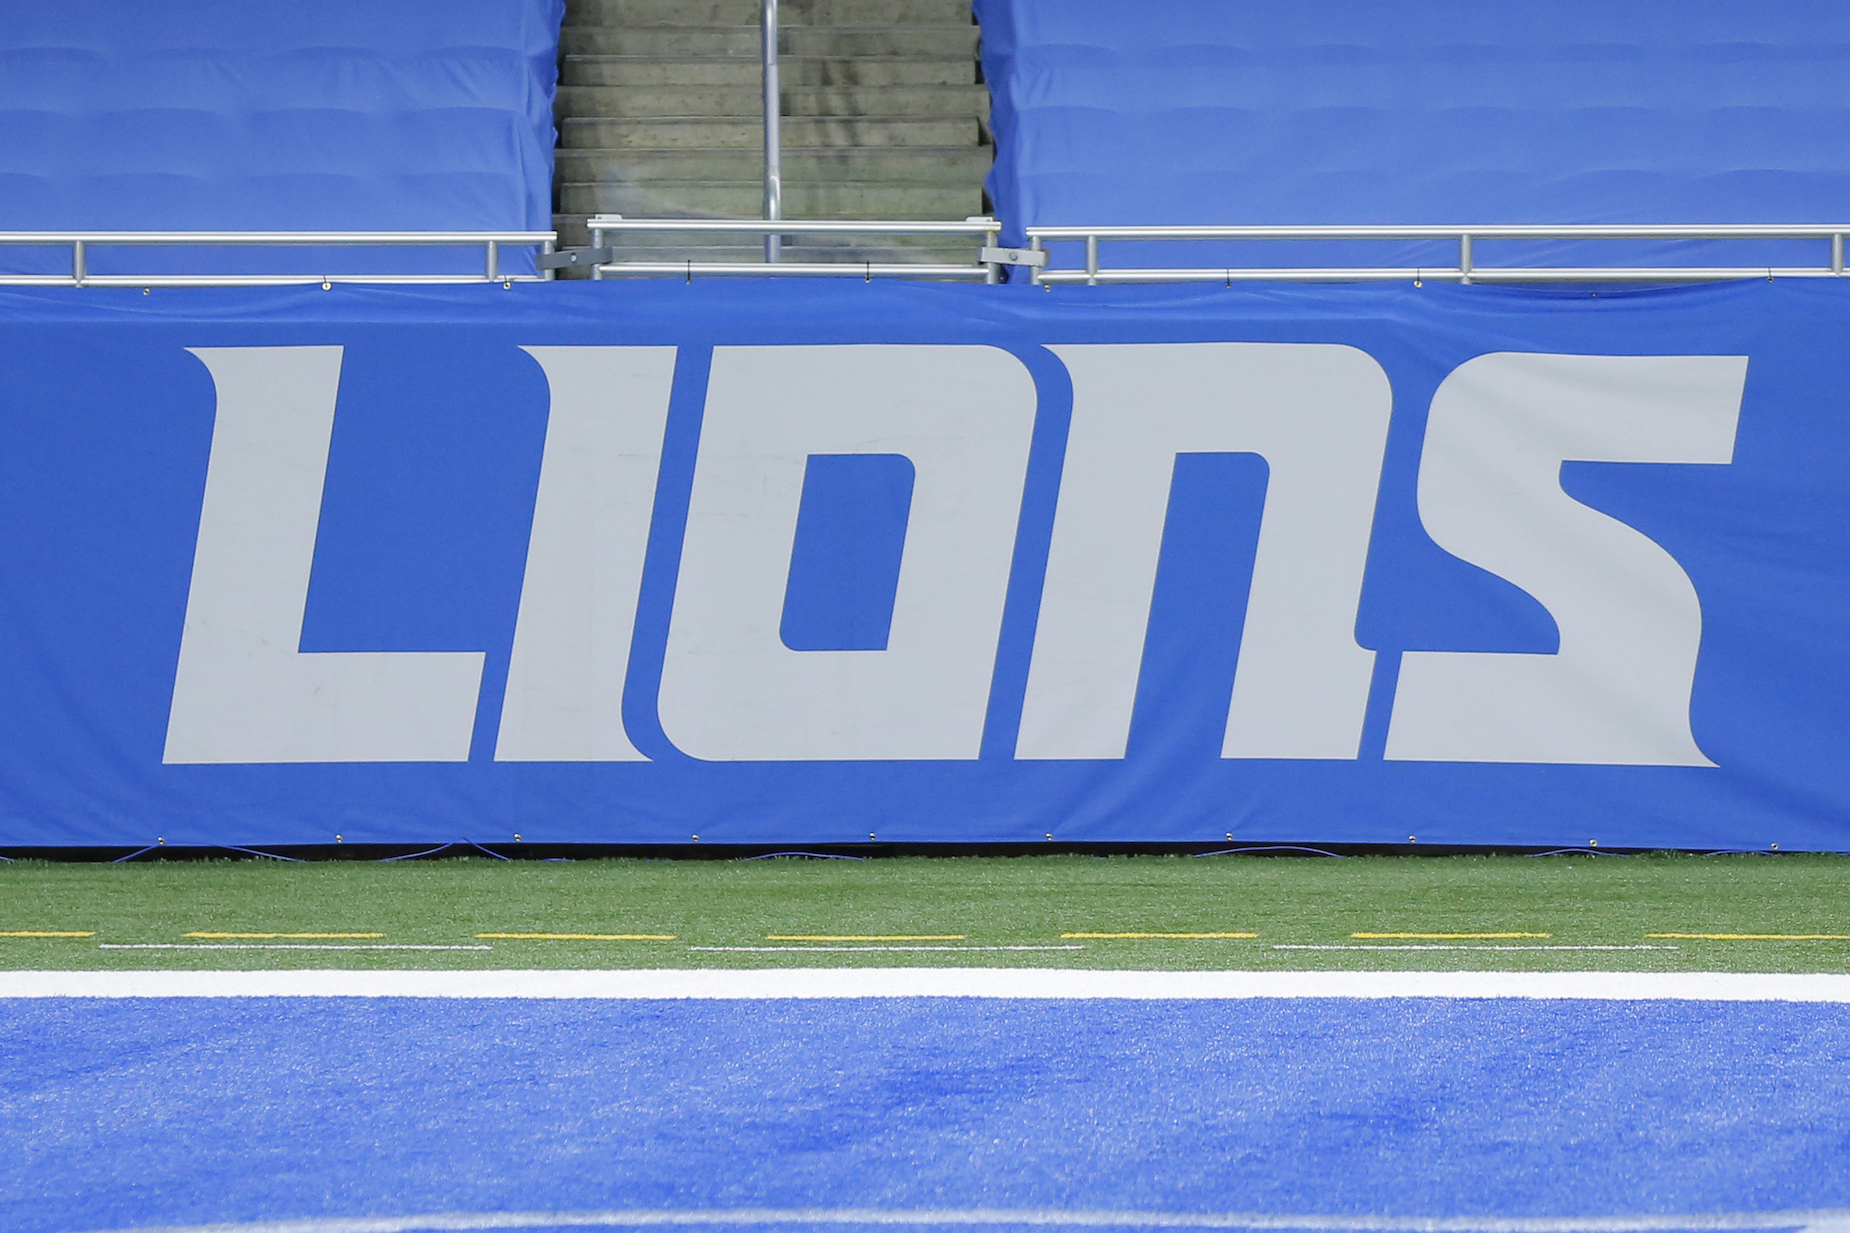 The Detroit Lions haven't won a championship since the 1950s, but are still worth more than $2 billion to their owners.